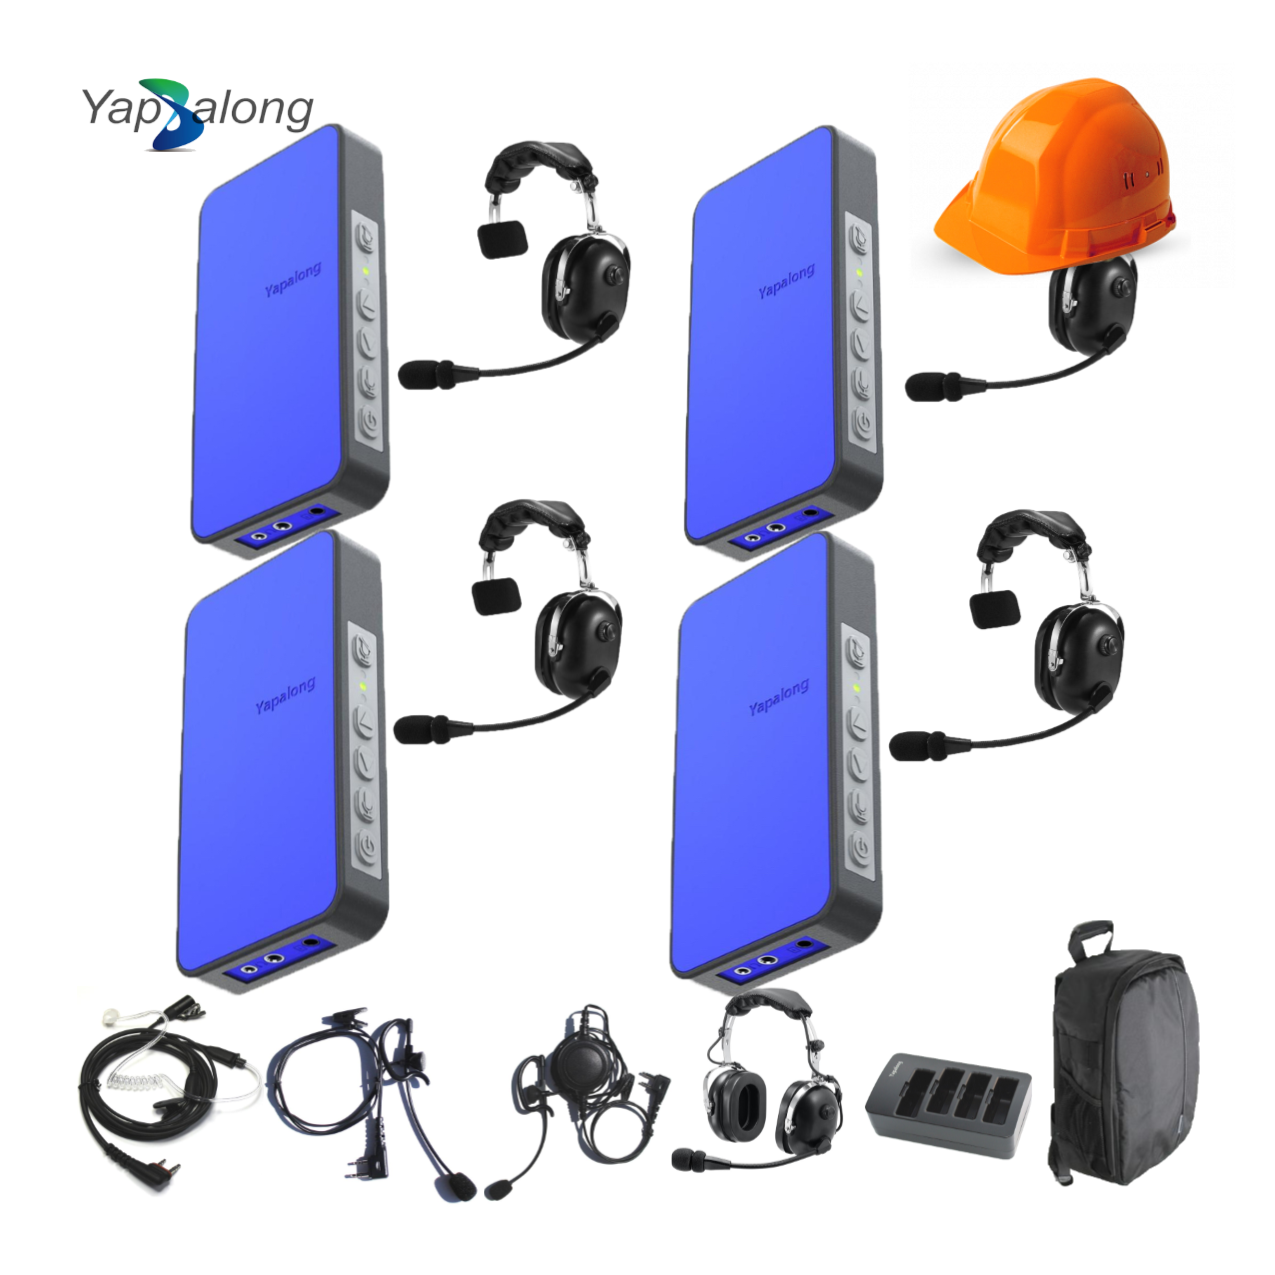 Yapalong 5000 (4-User) Industriale Complete Set Intercom Systems Intercom Systems